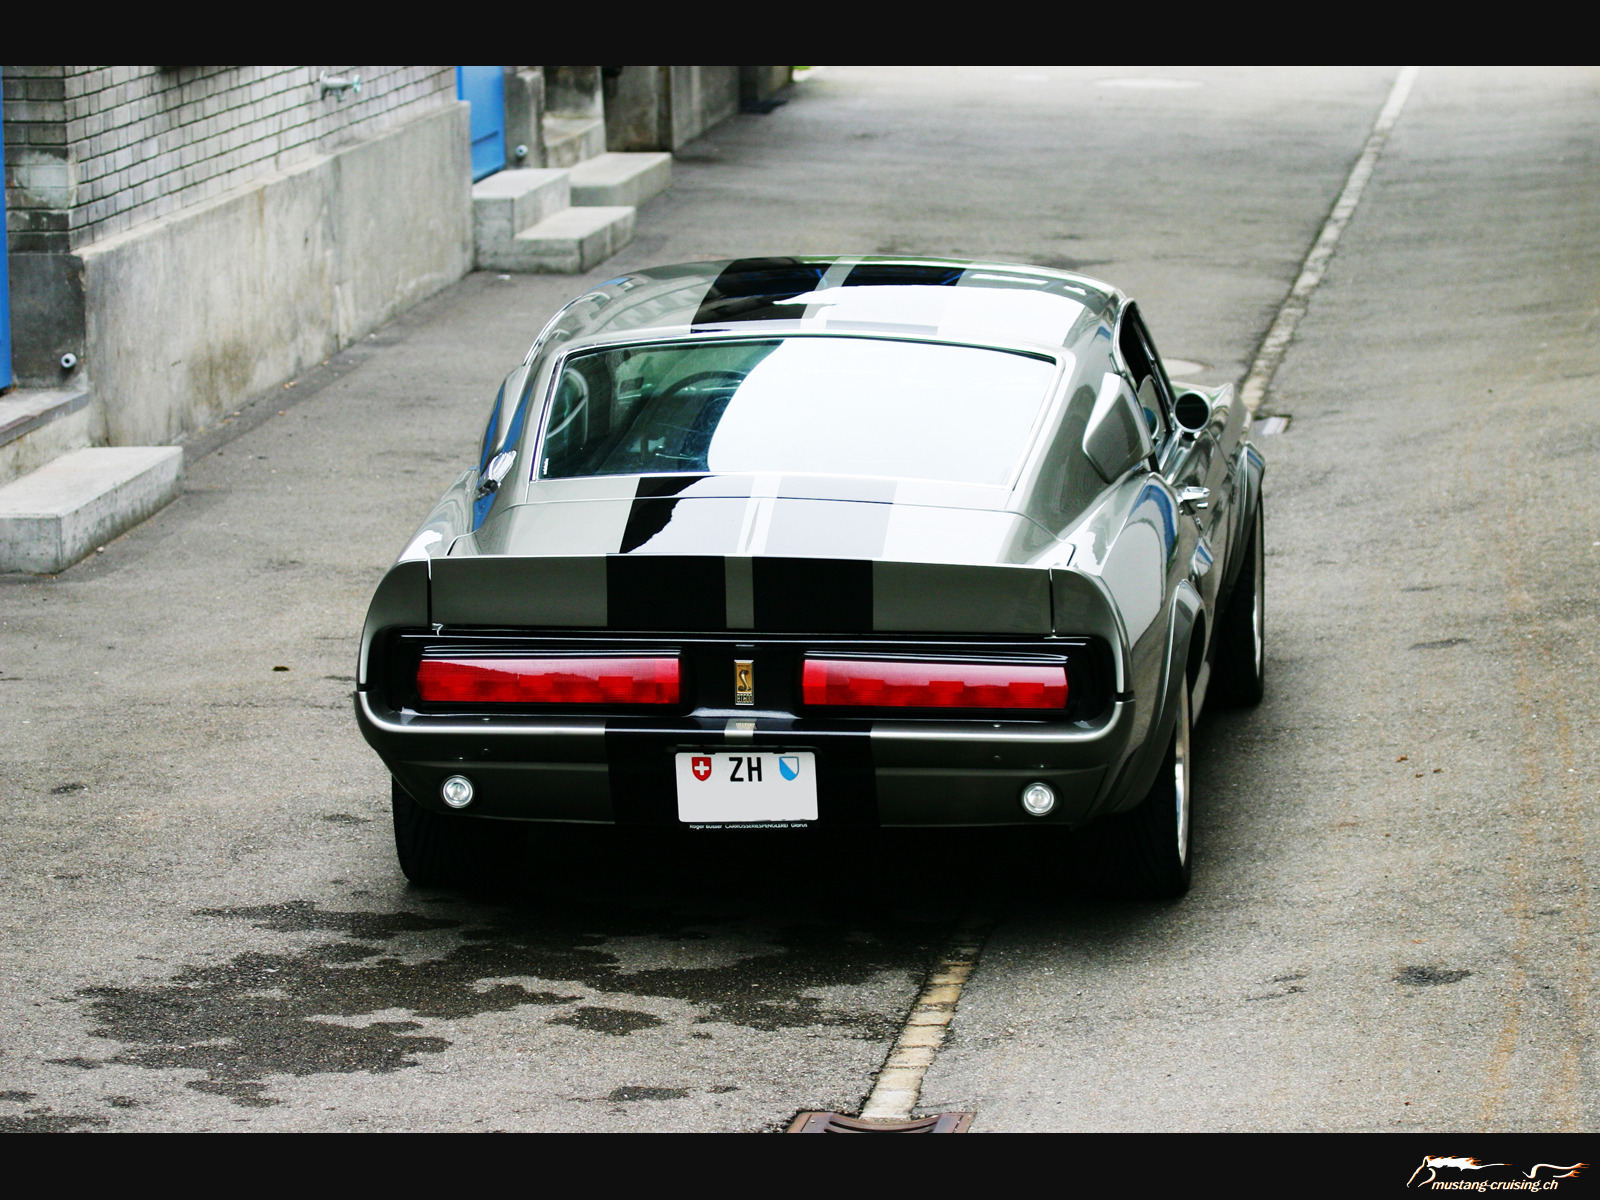 http://www.mustang-cruising.ch/cmine/albums/wallpapers/1964-1973/mustang-1967eleanor3.jpg